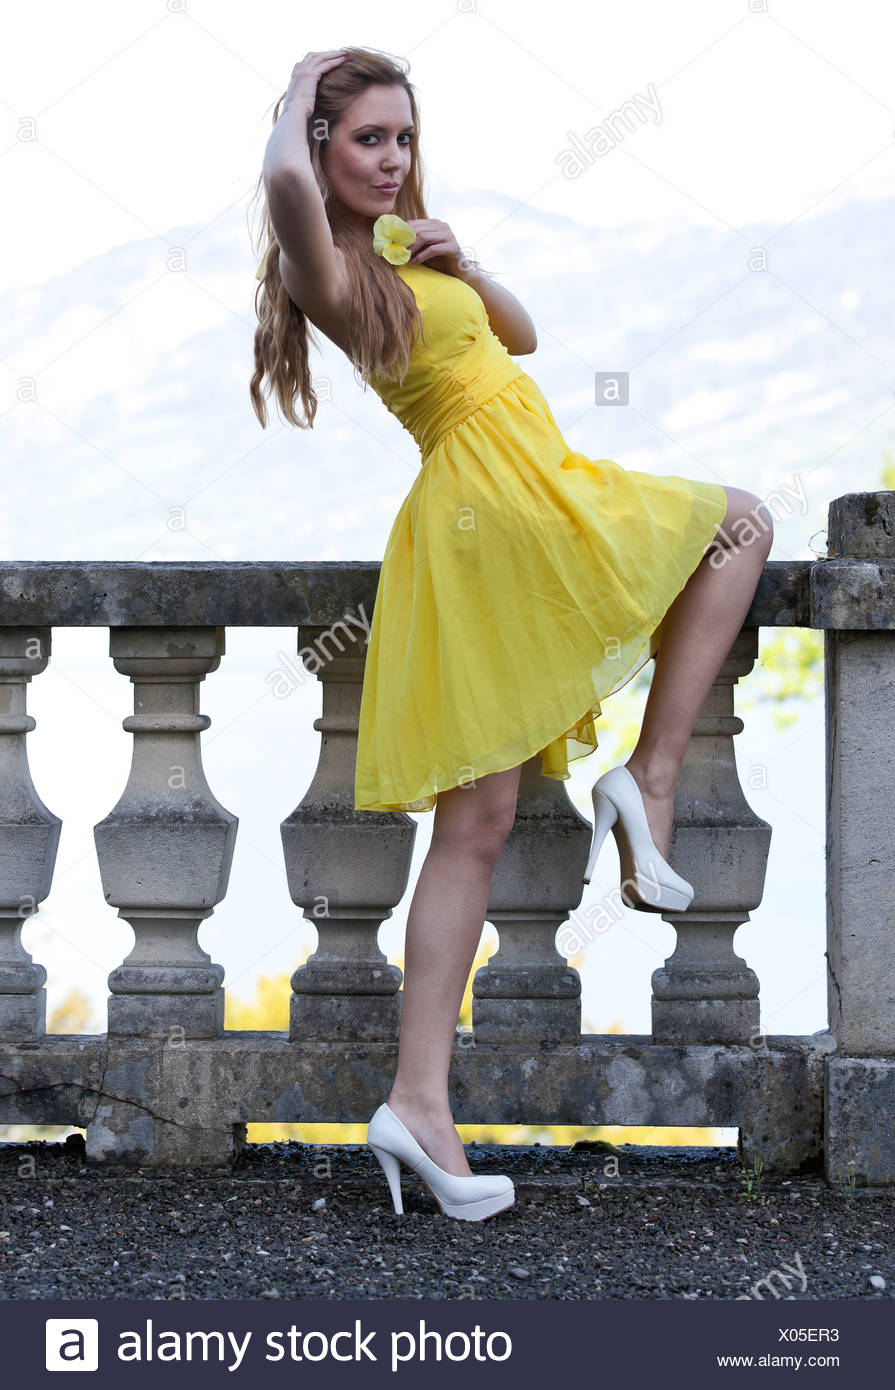 Young woman posing in a yellow dress with white high heels in front of a balustrade - Stock Image